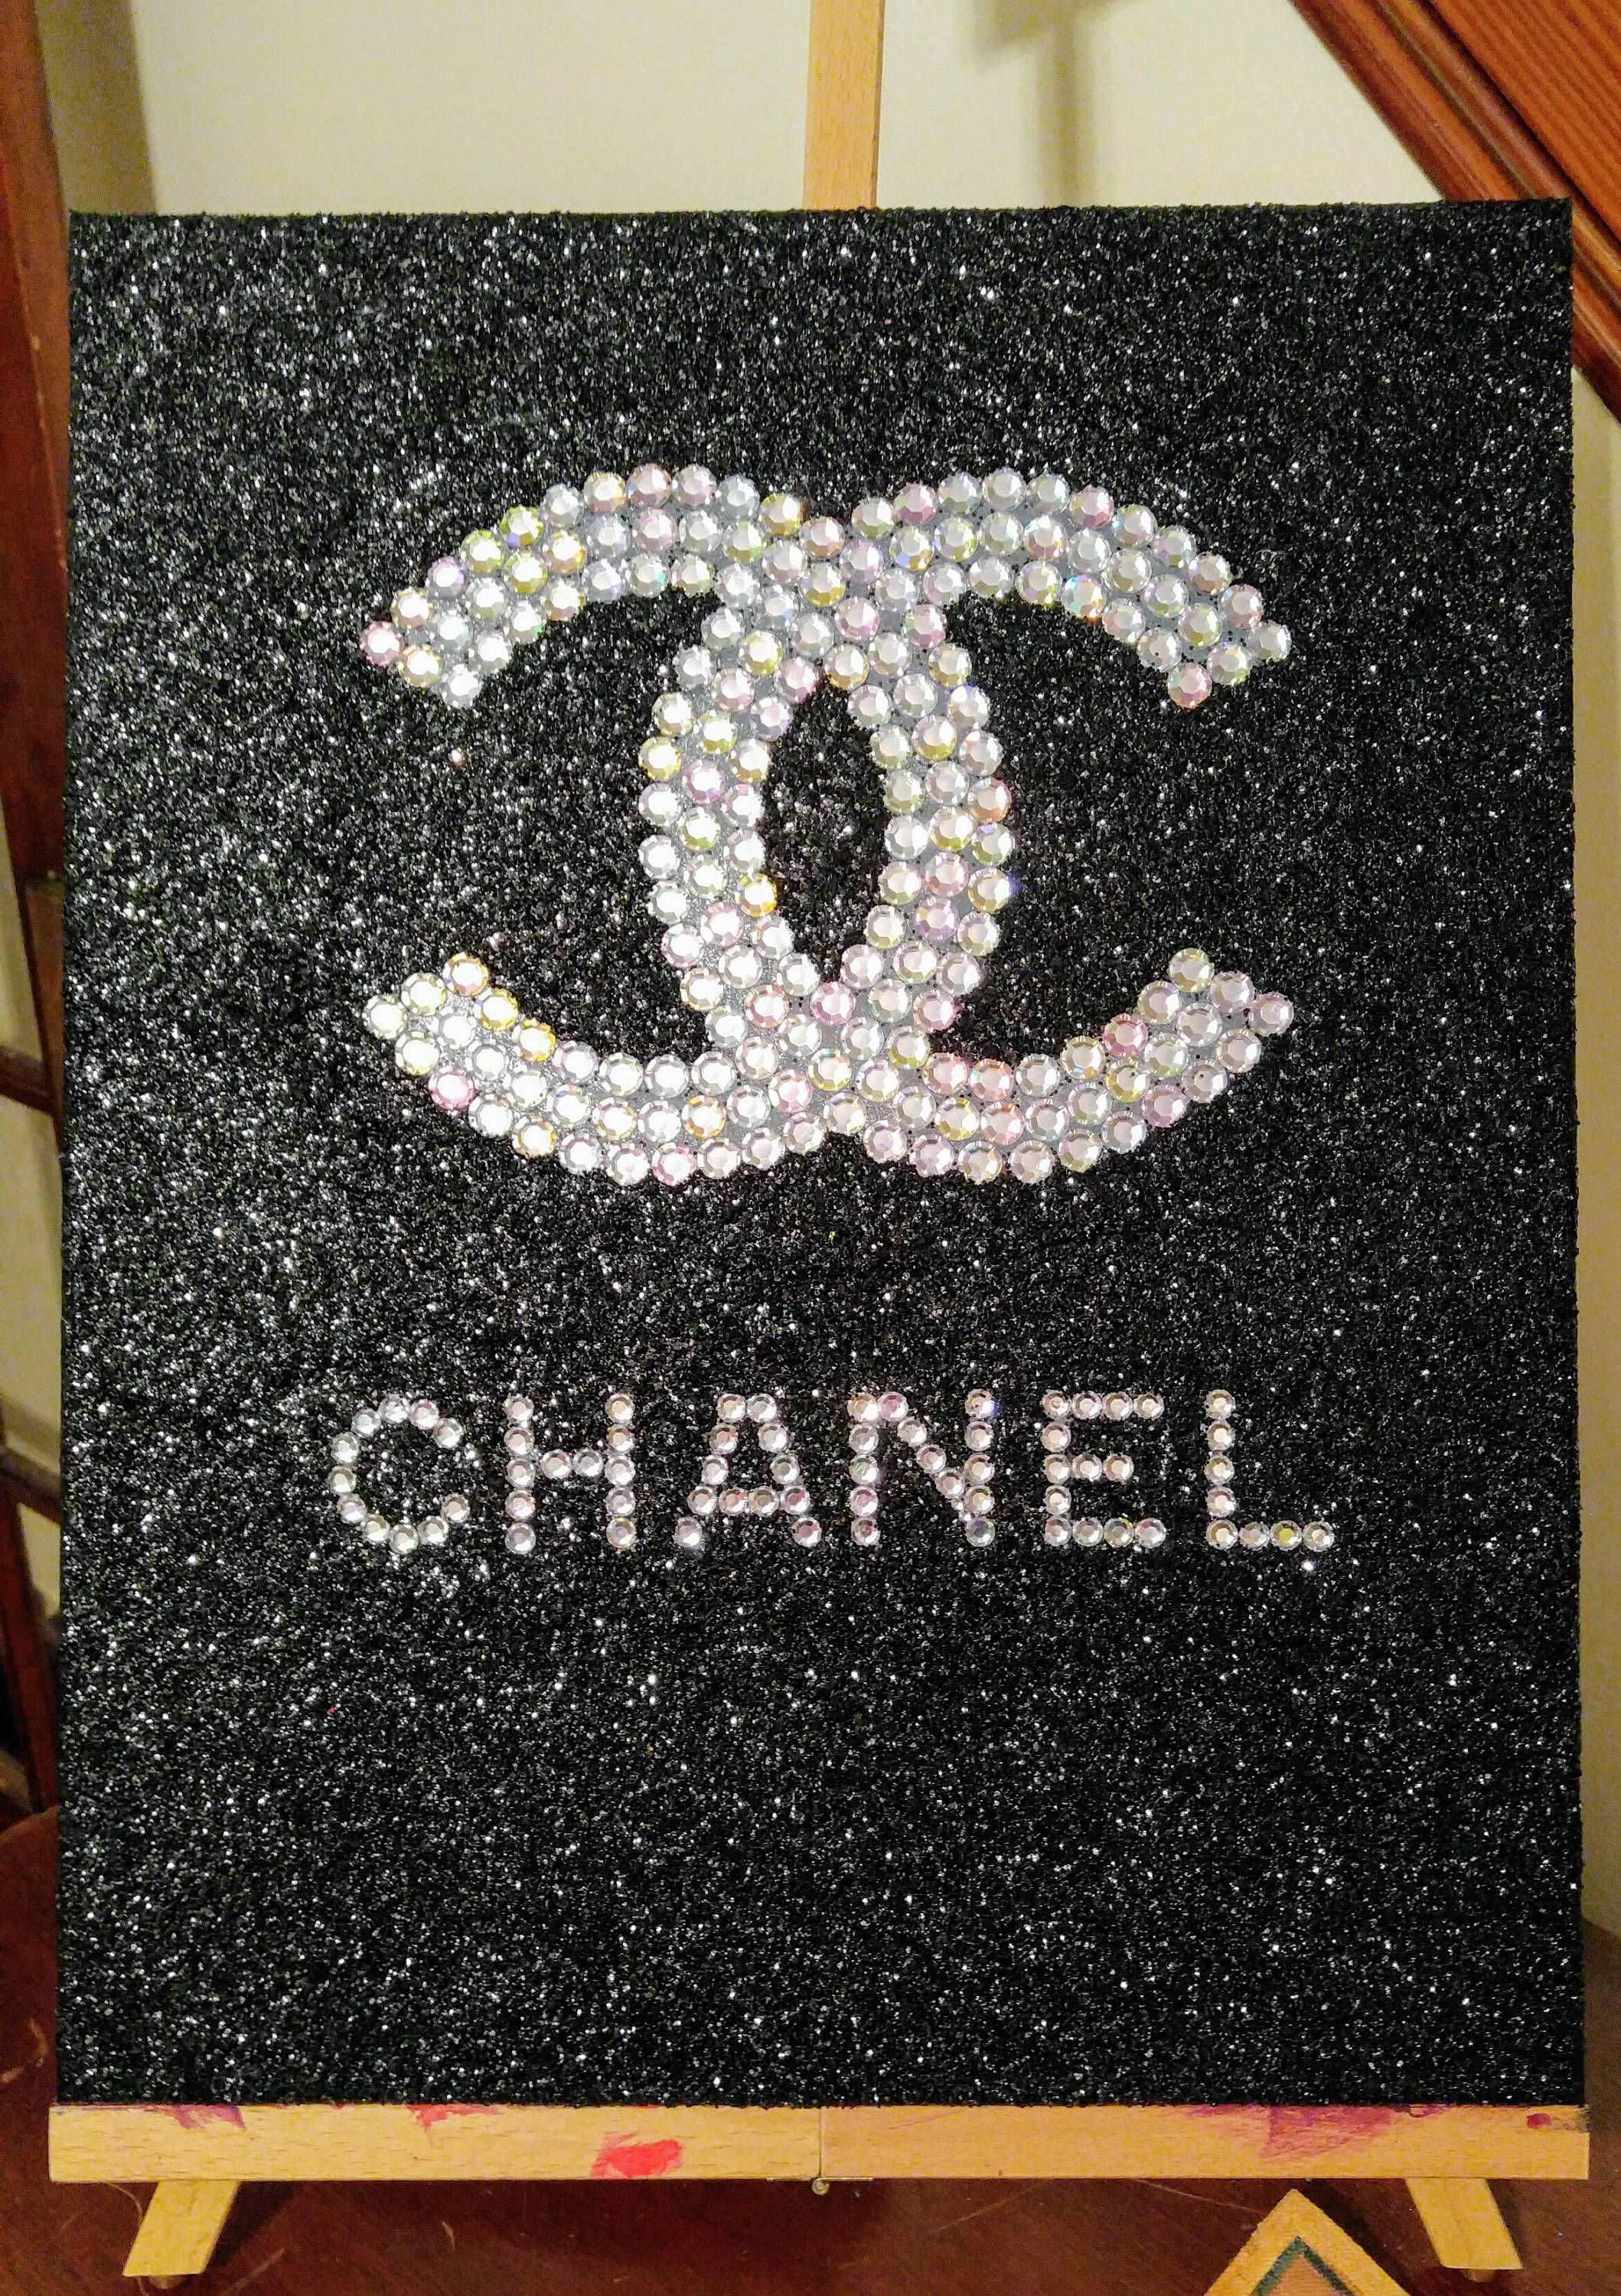 Inspired Chanel Rhinestone With Black Glitter Stretched Canvas Wall Art By Thecanvascreationco On Ets Chanel Decor Stretched Canvas Wall Art Glitter Background